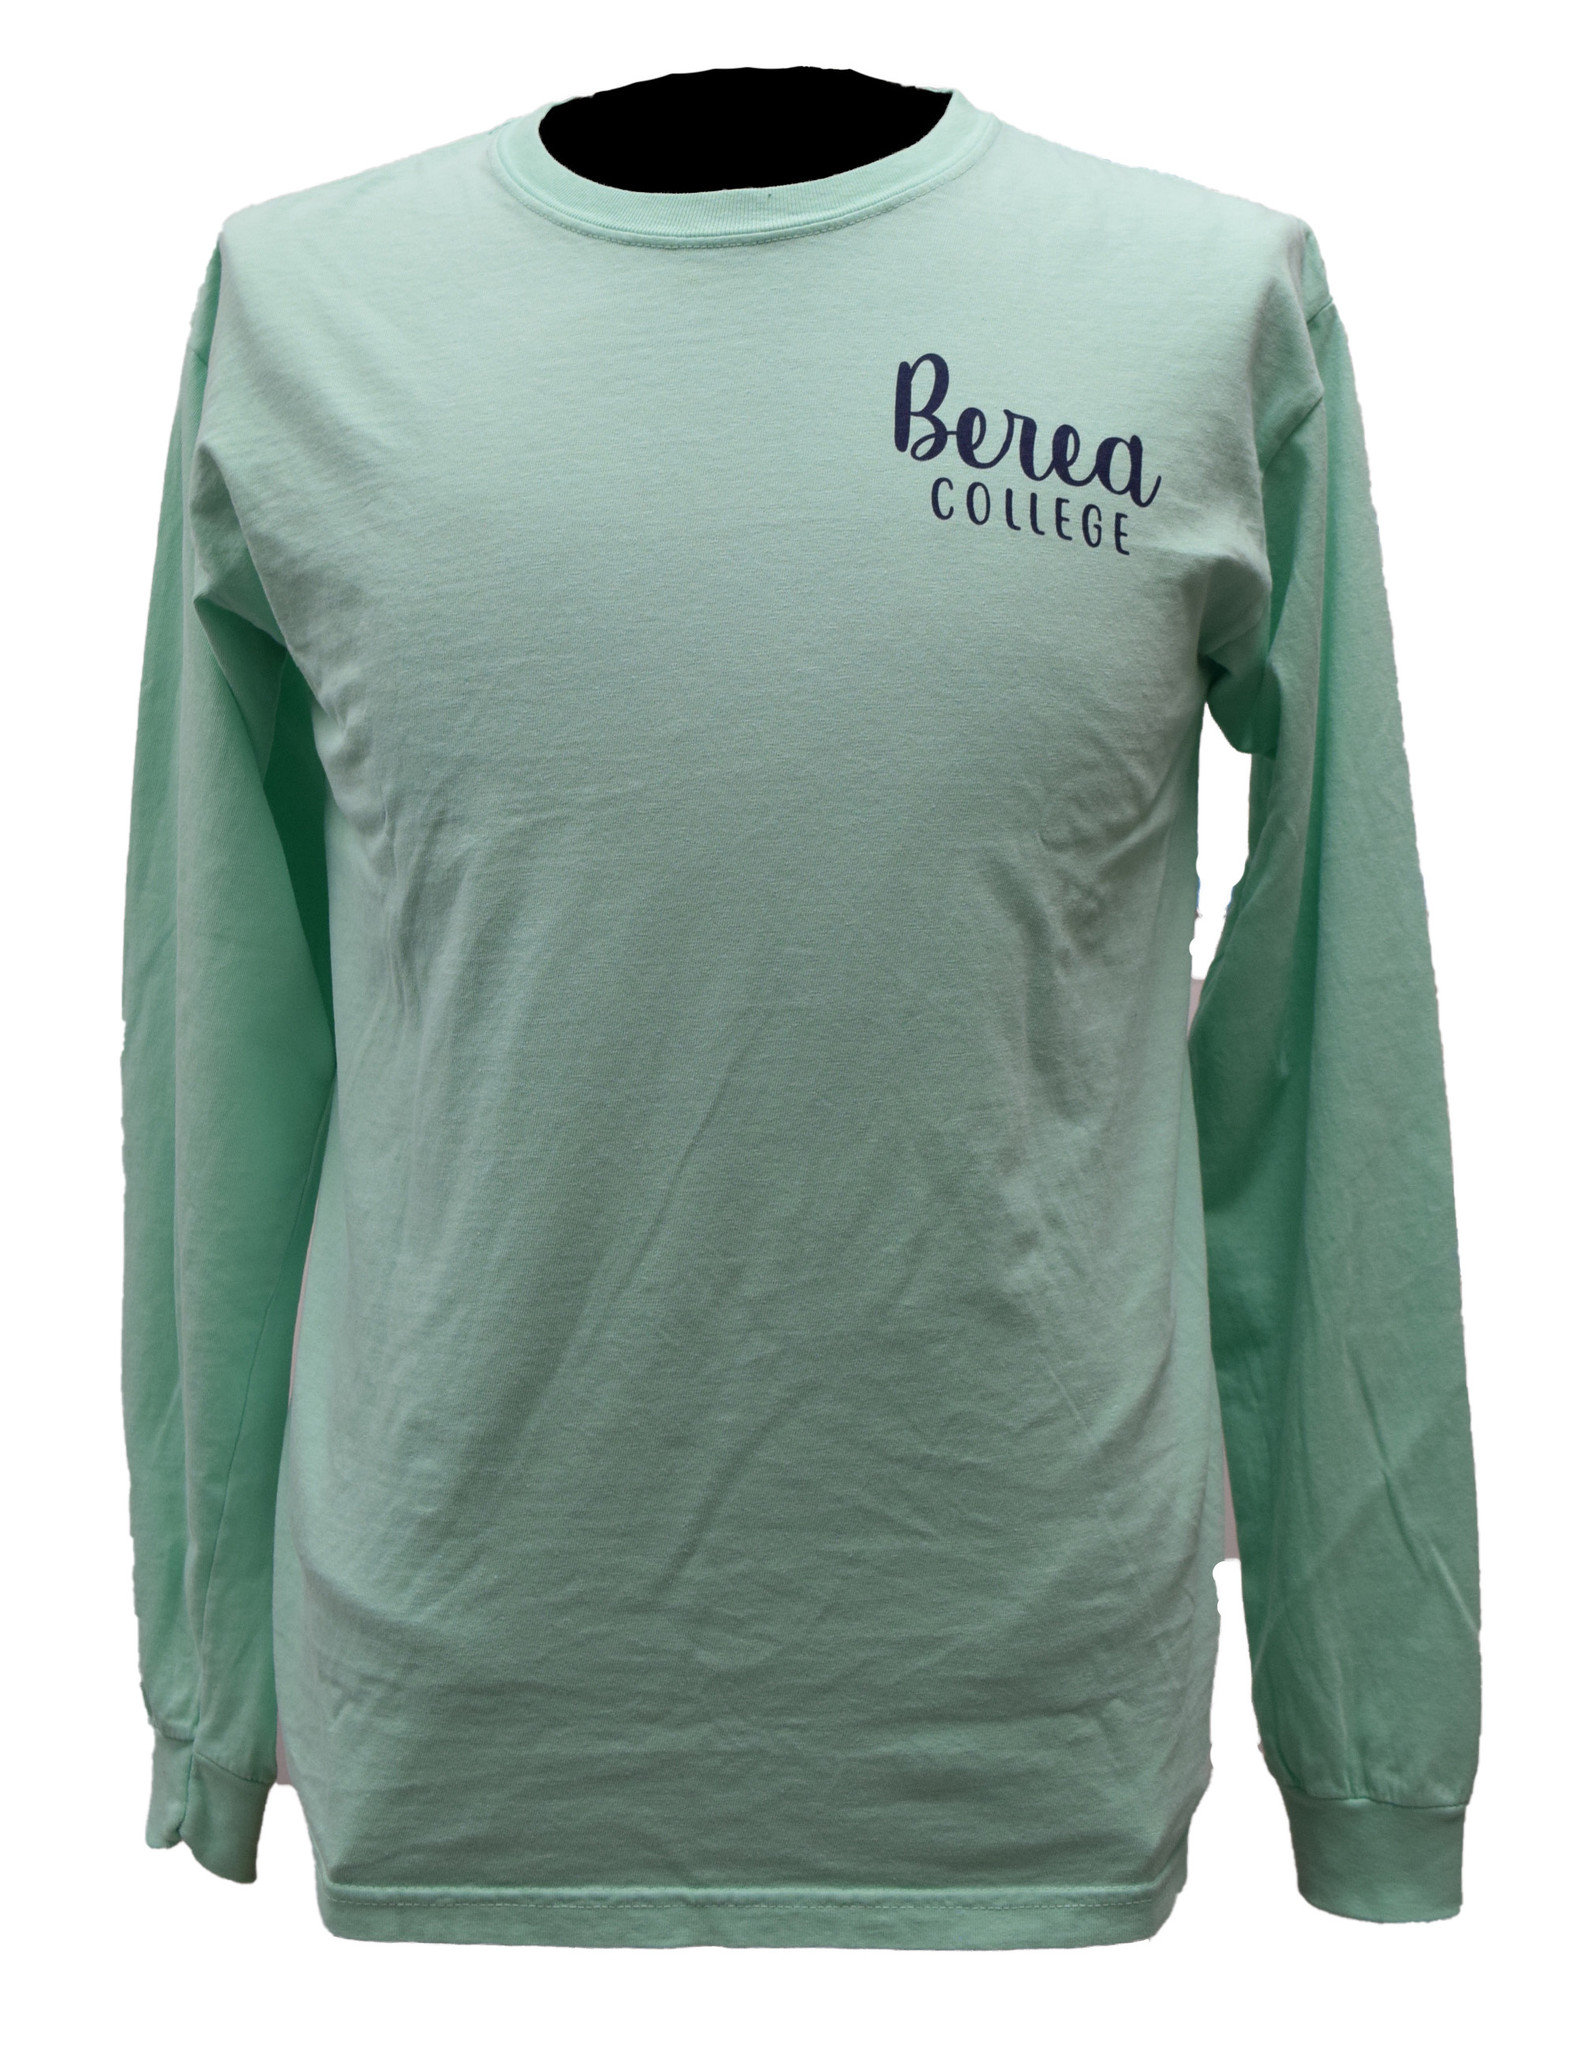 Berea College  Square and flowers T shirt-2